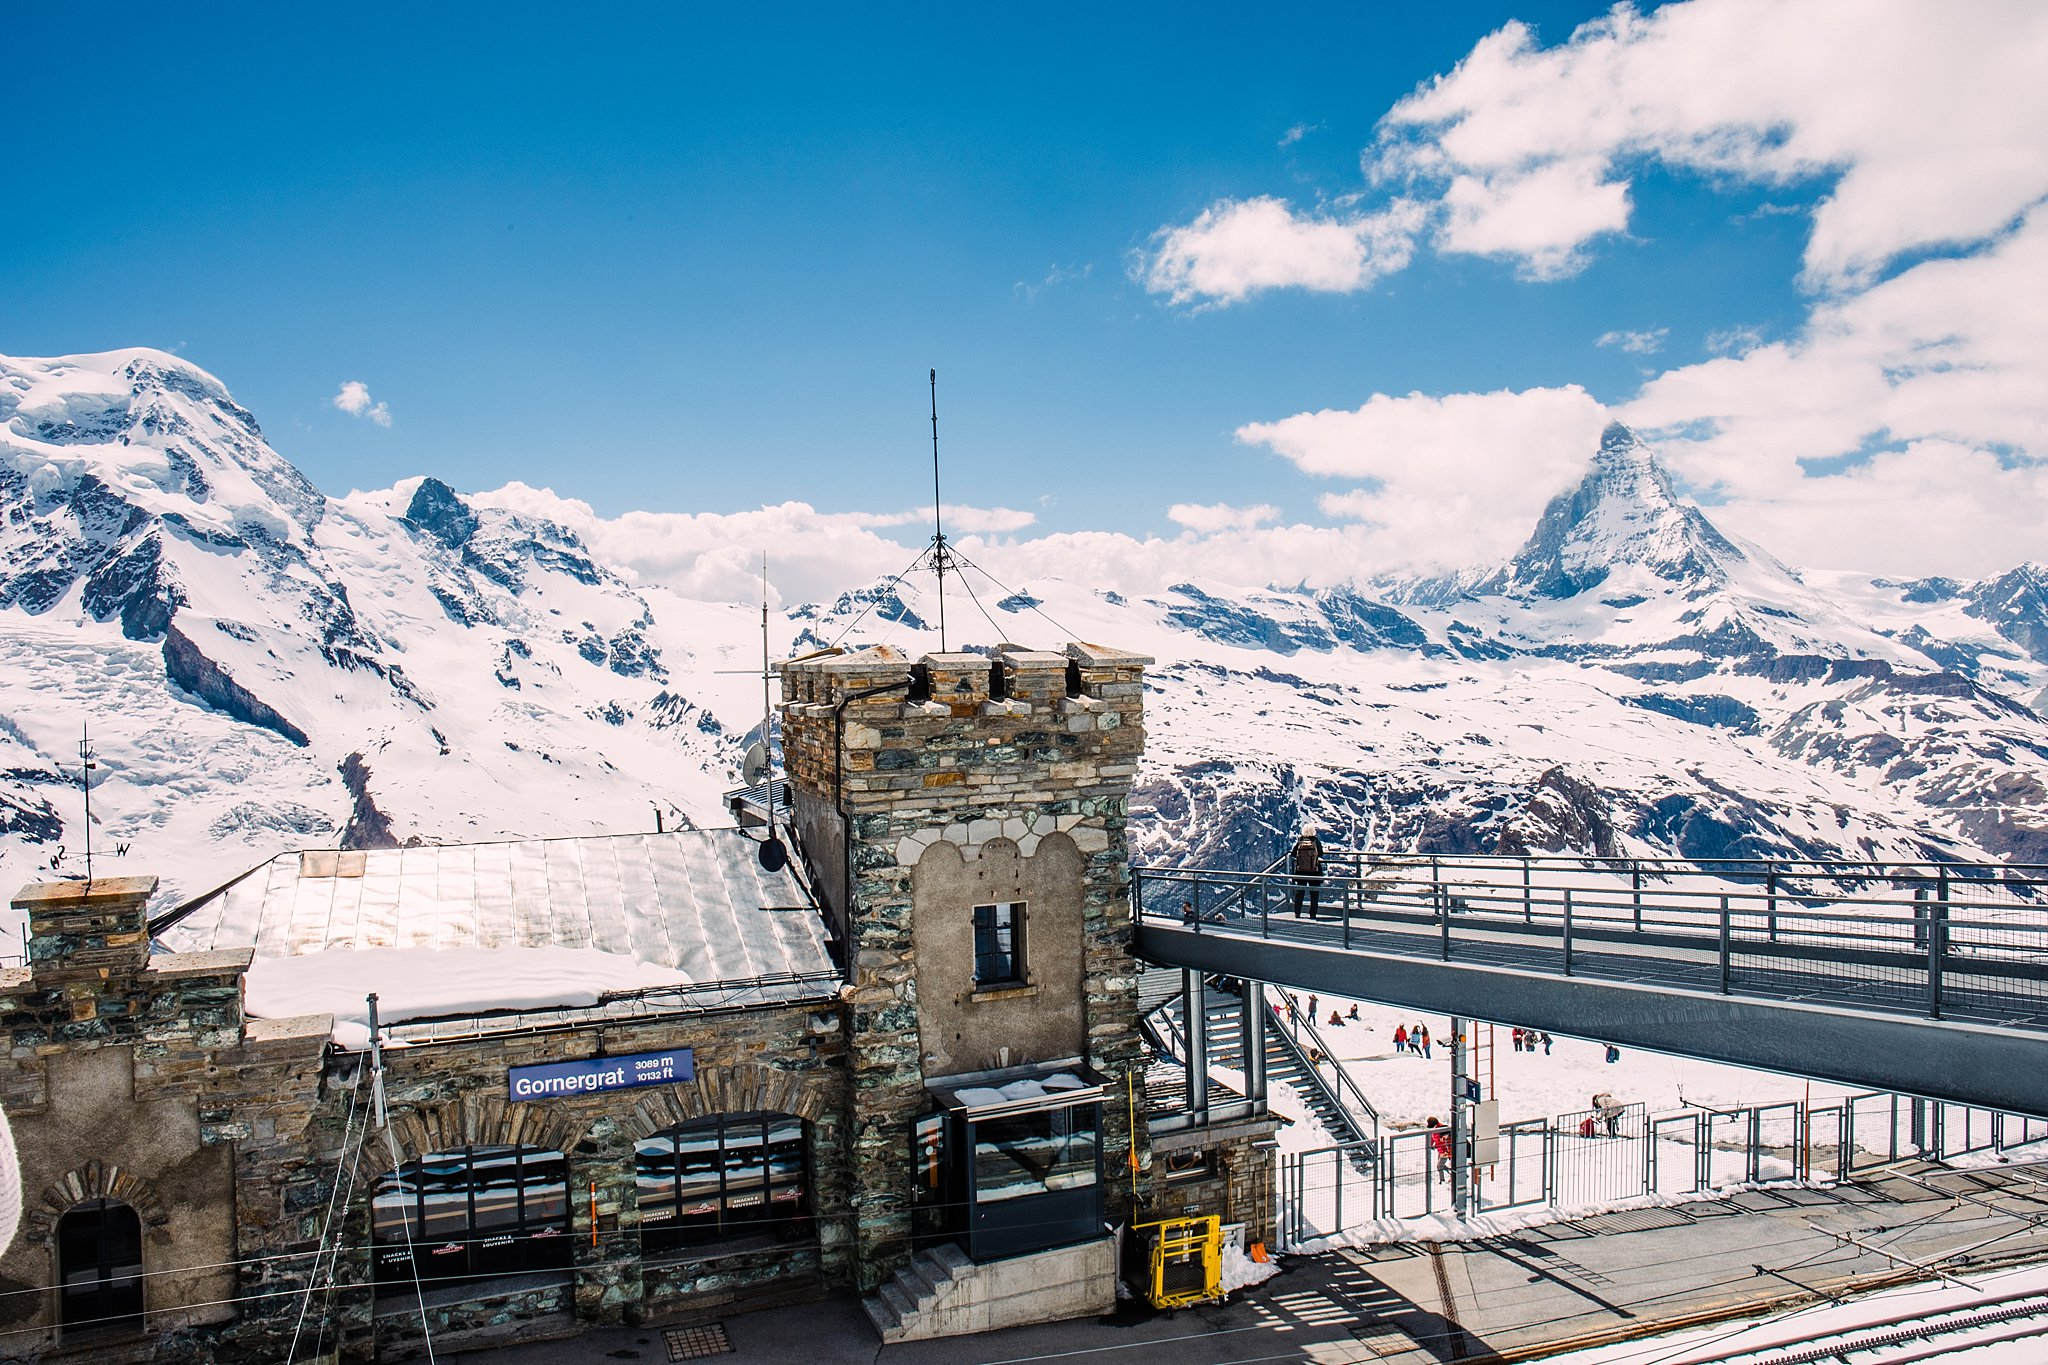 europe,gornergrat,matterhorn,mountains,swiss,swiss alps,switzerland,tourism,vacation,zermatt,